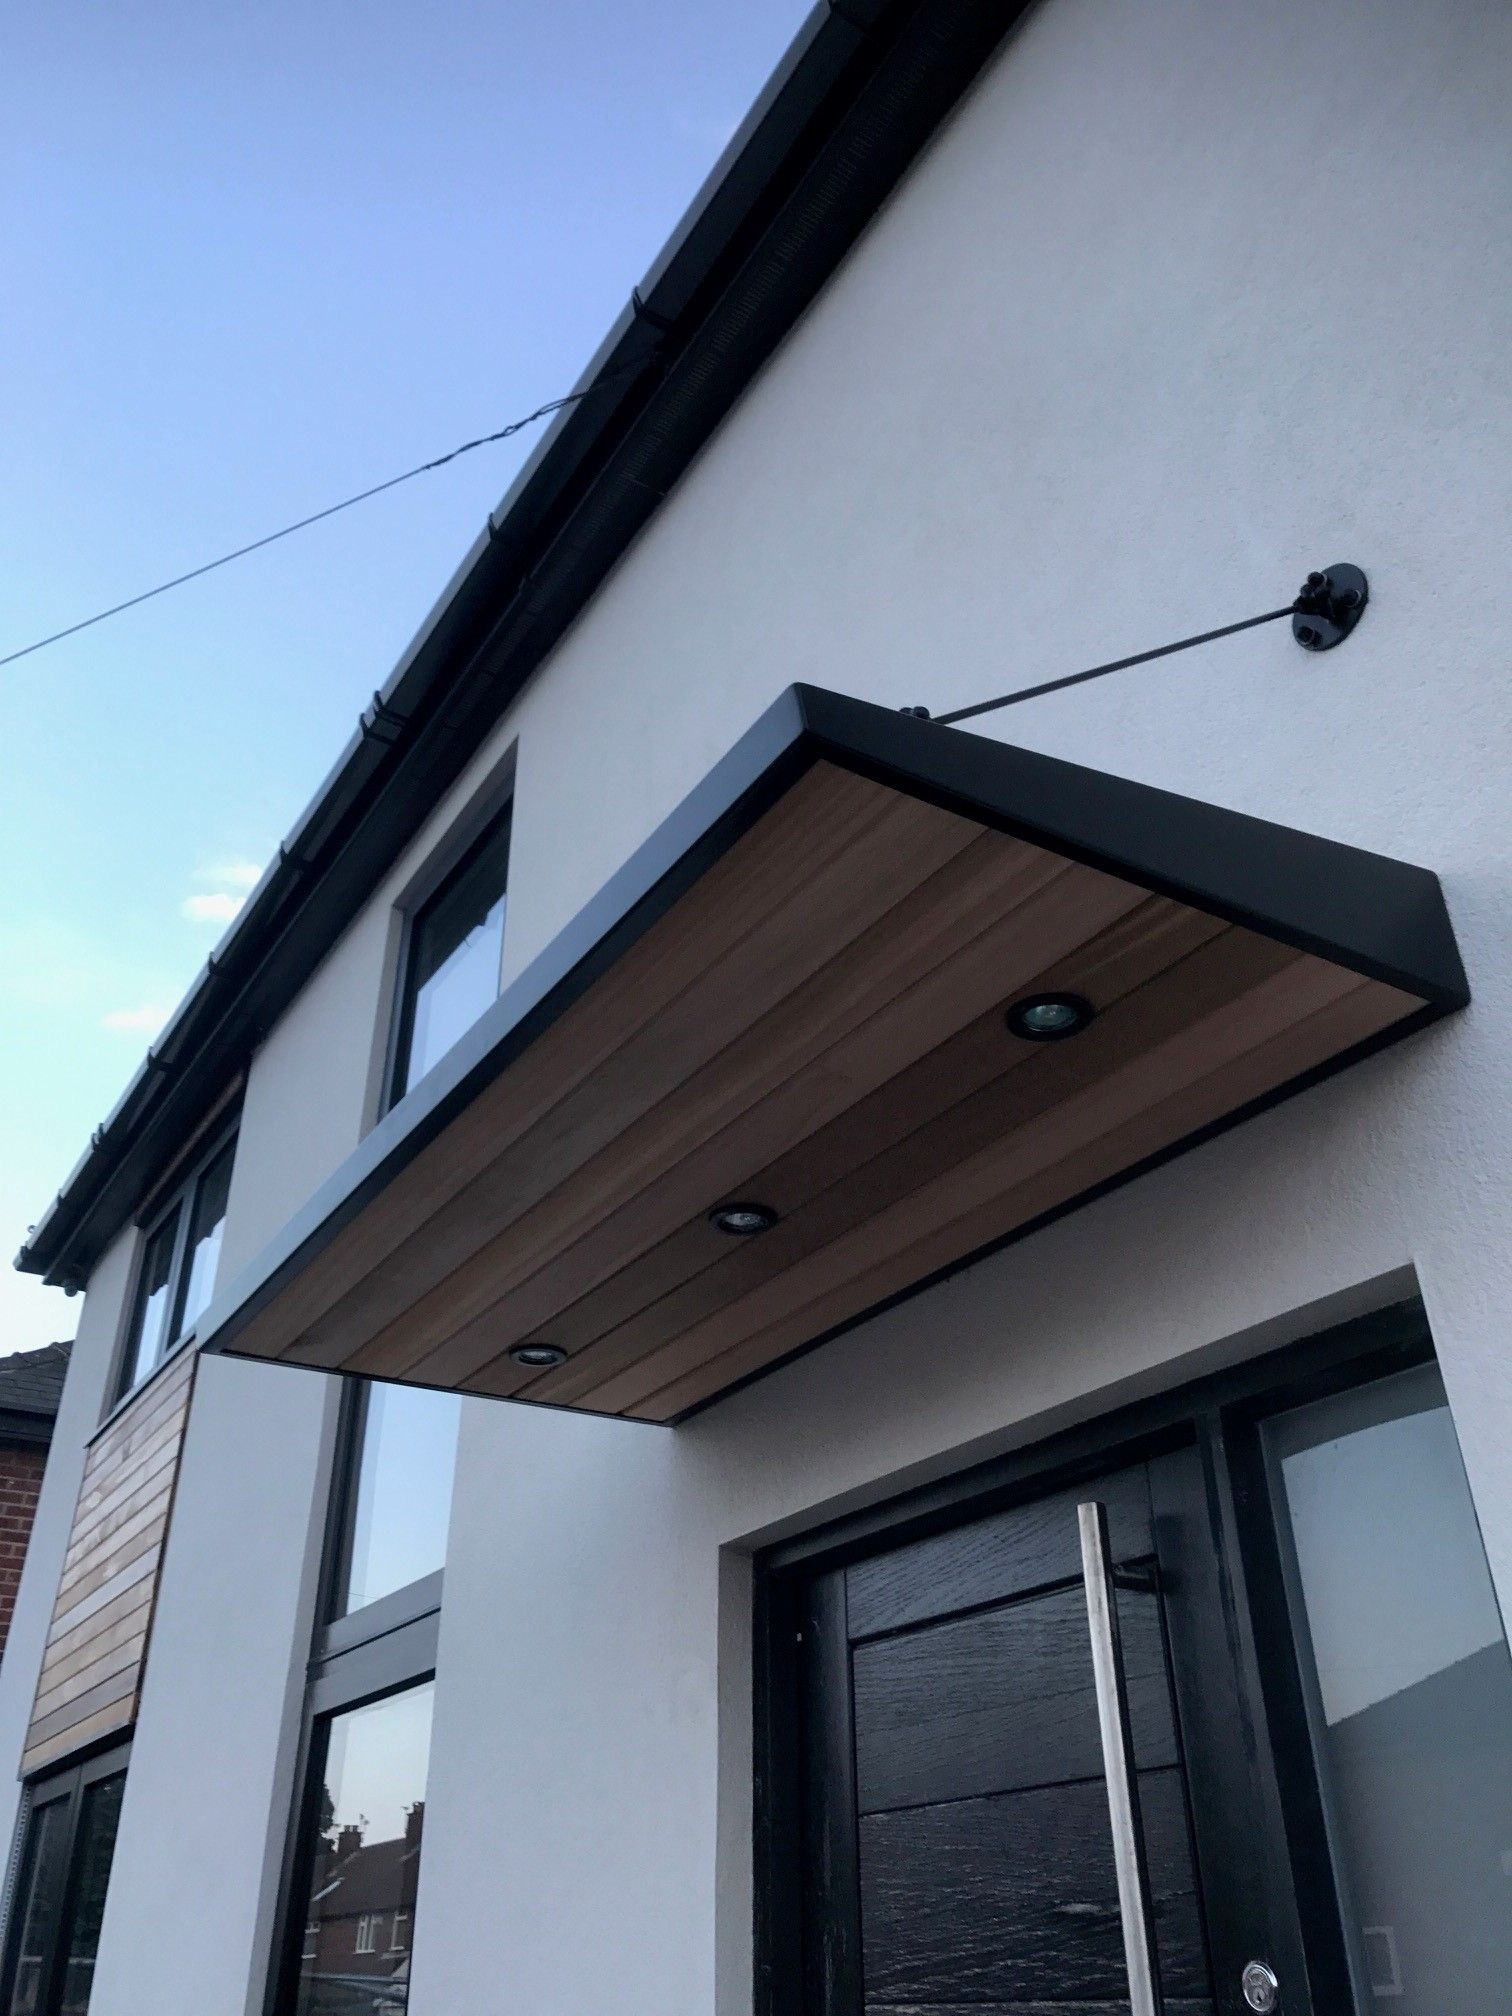 Le Meilleur Metal Door Canopy With Cladding And Entrance Light For Ce Mois Ci